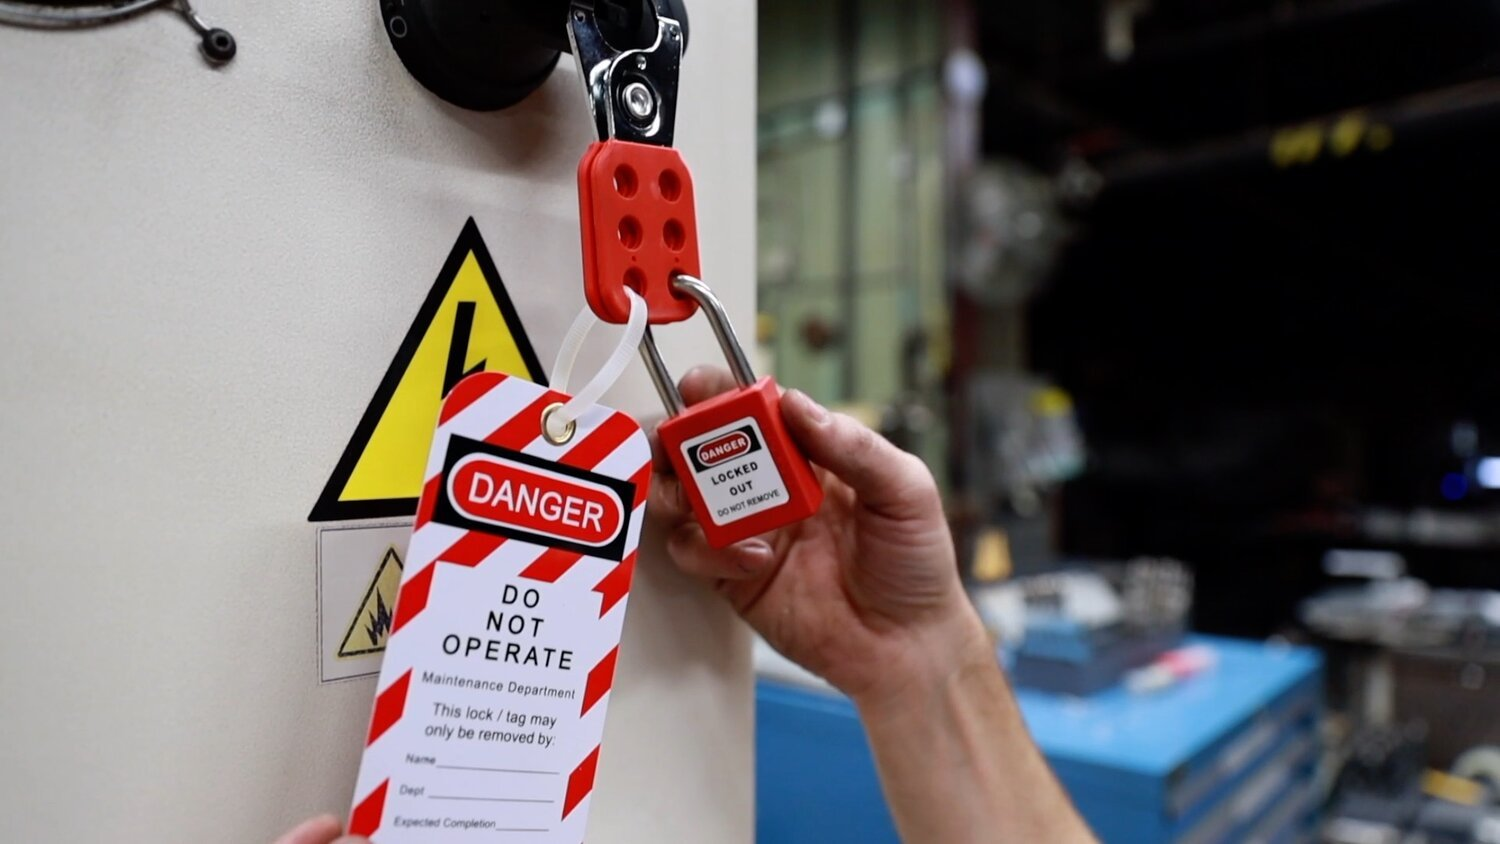 Lockout and Tagout program and its procedure